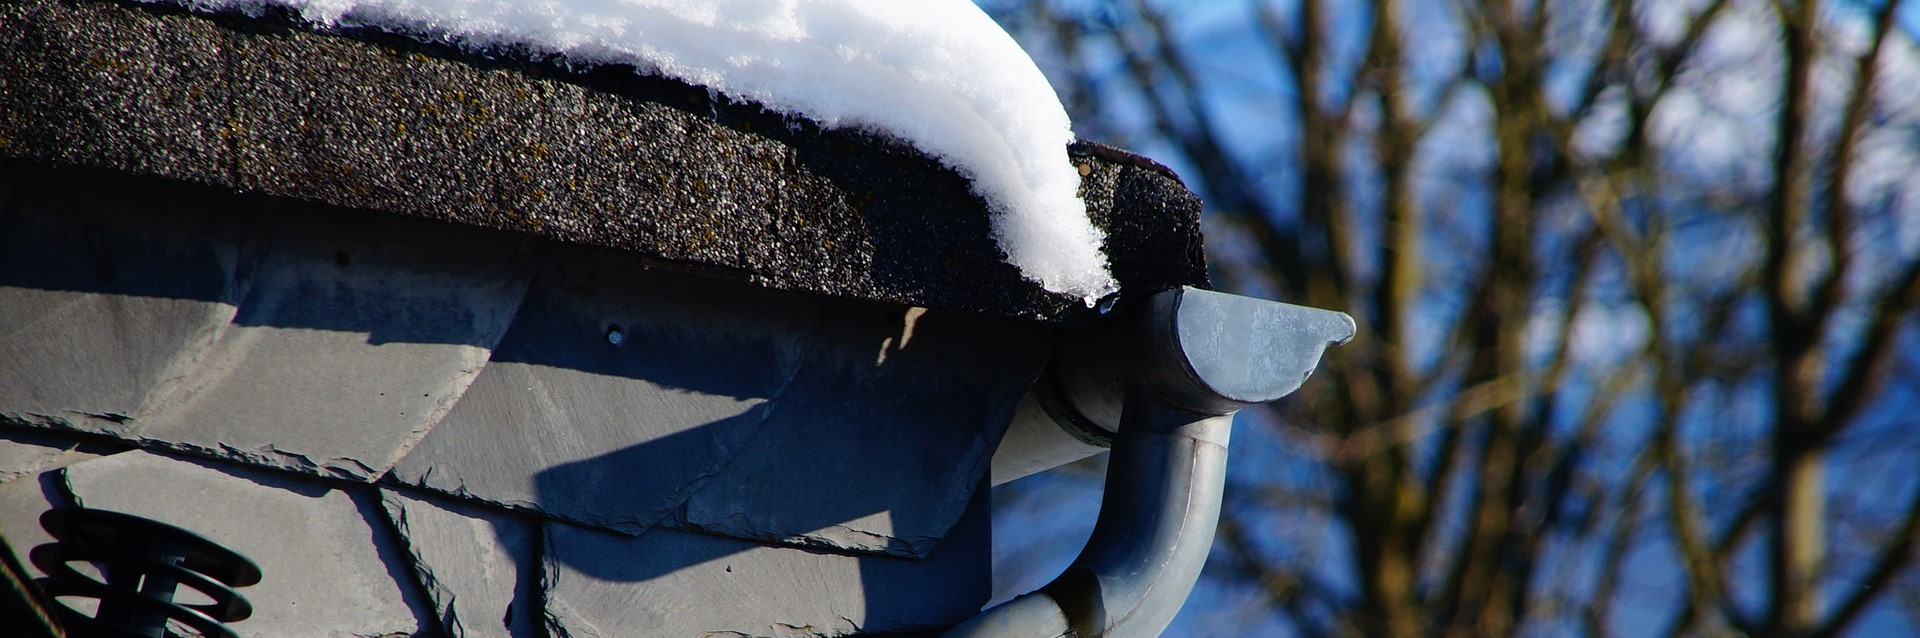 Roof Gutter with Snow   Breast Cancer Car Donations